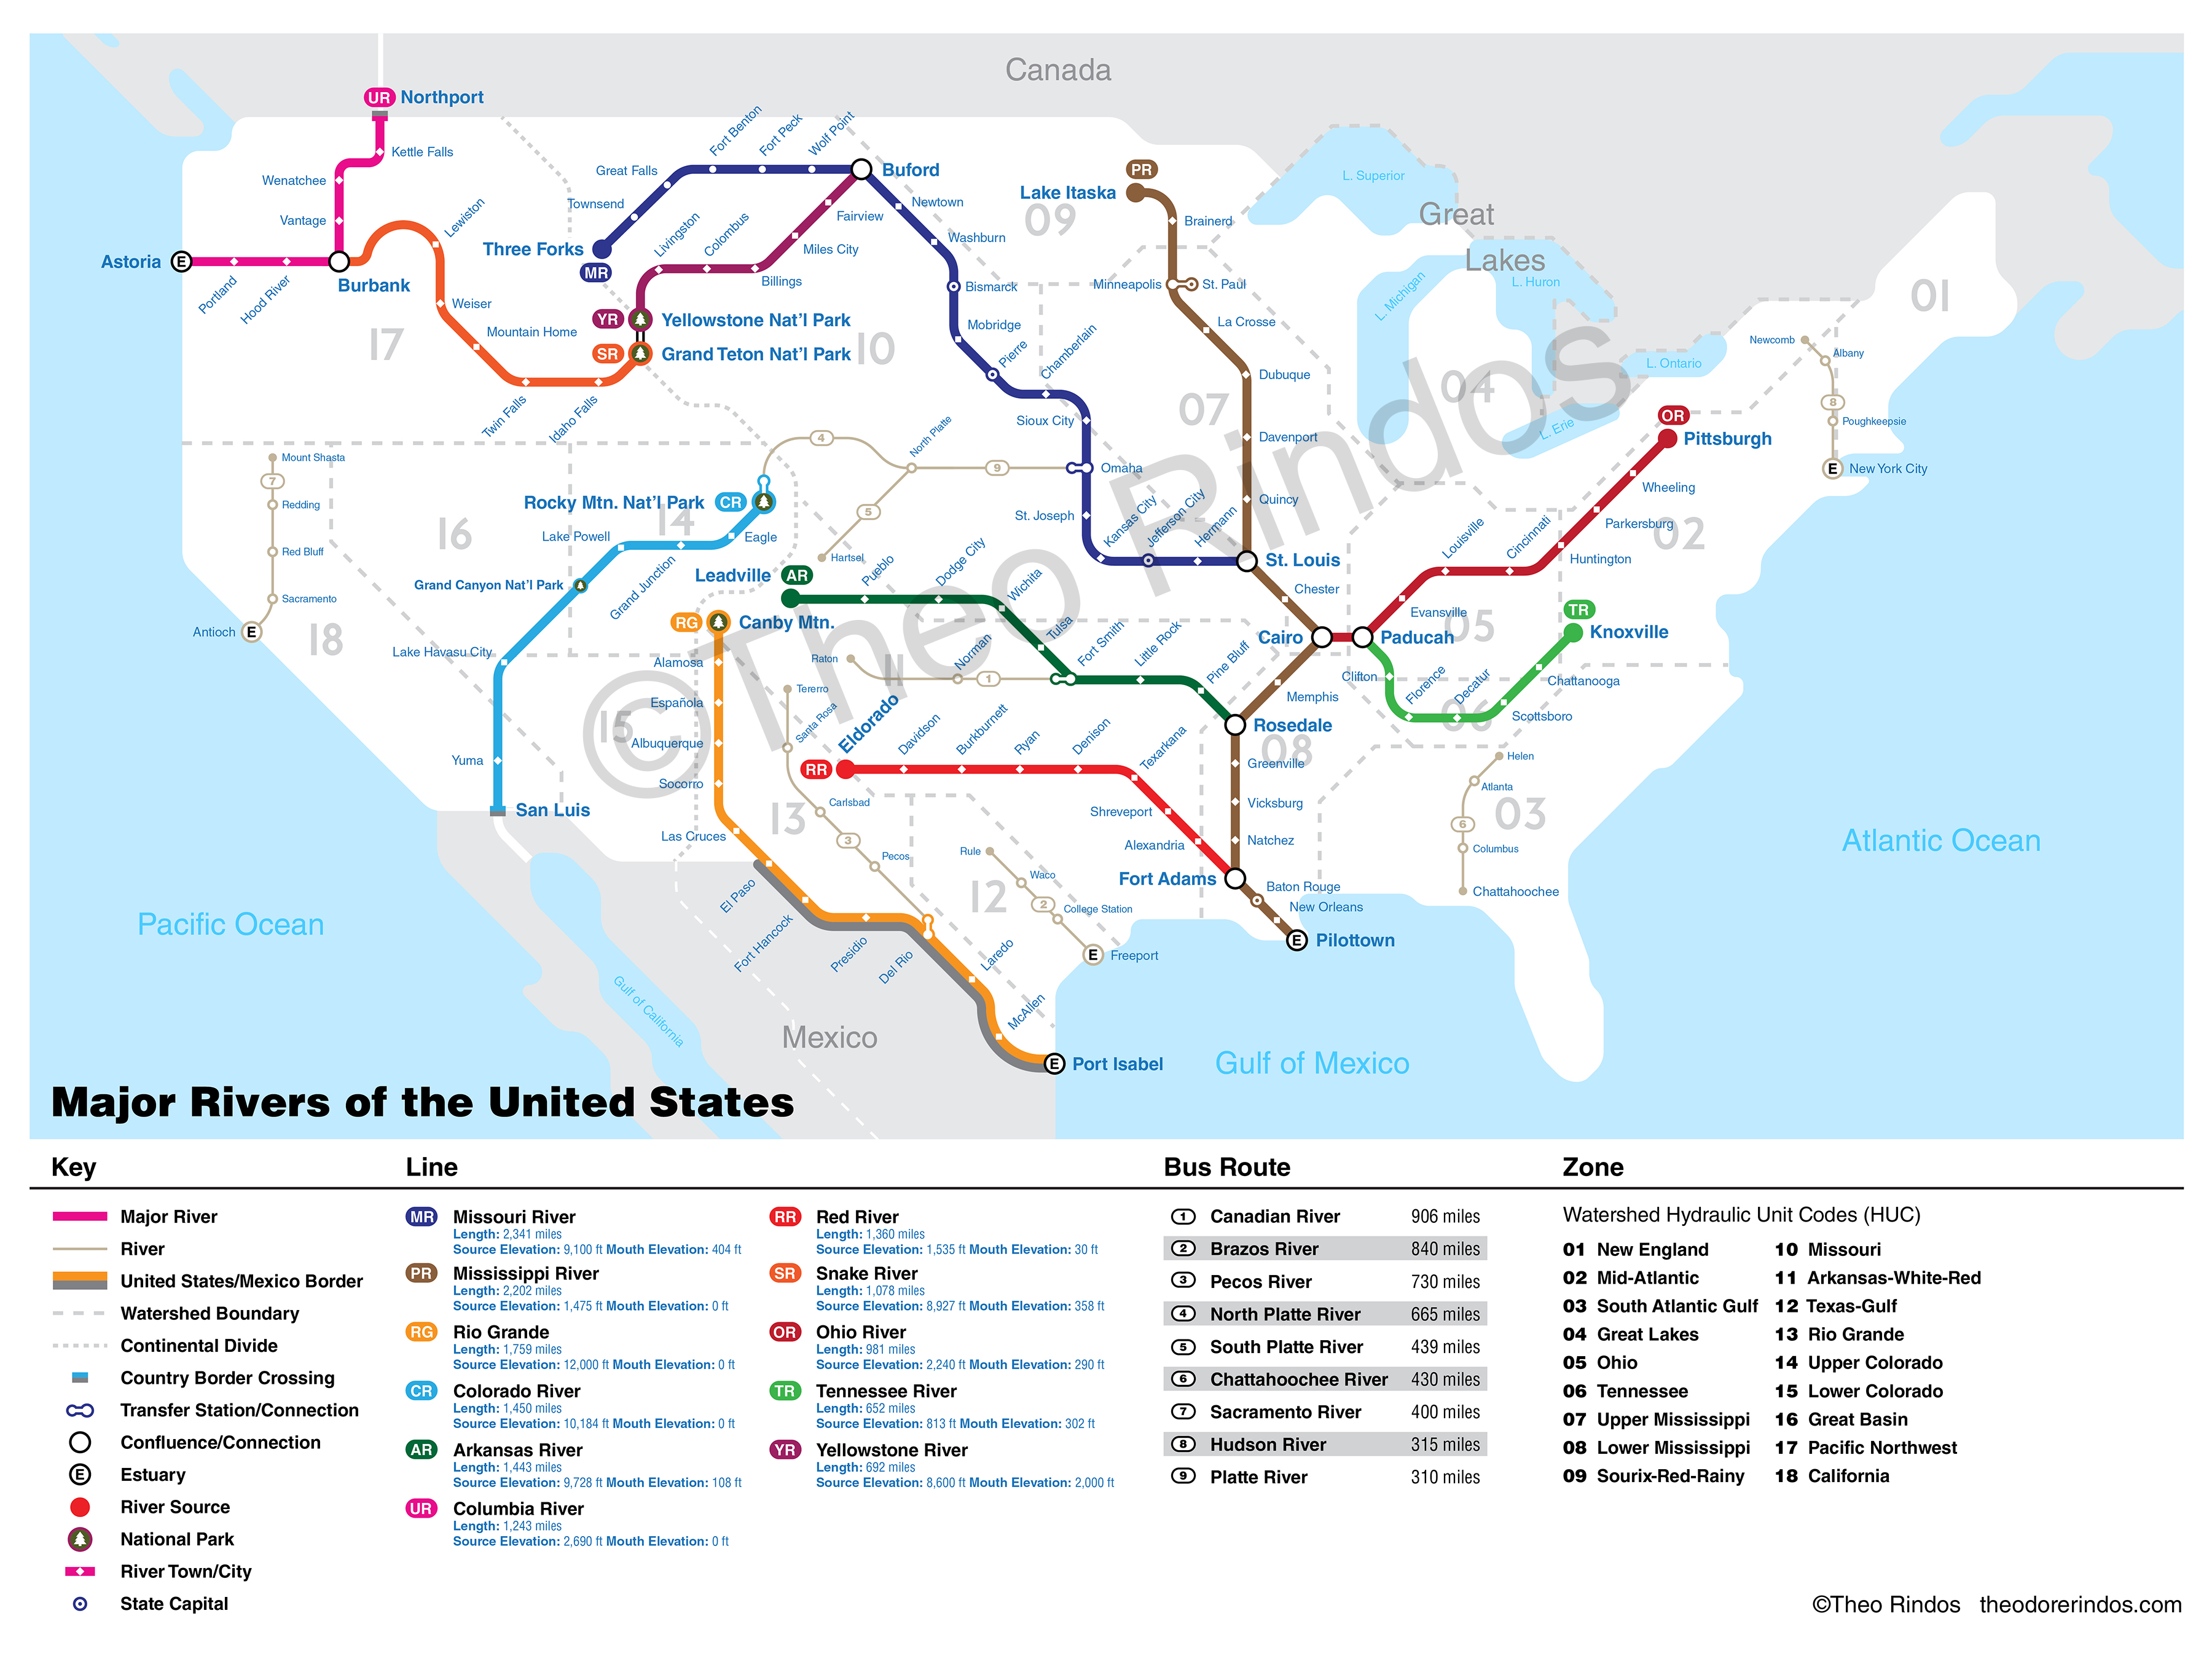 us rivers by flow